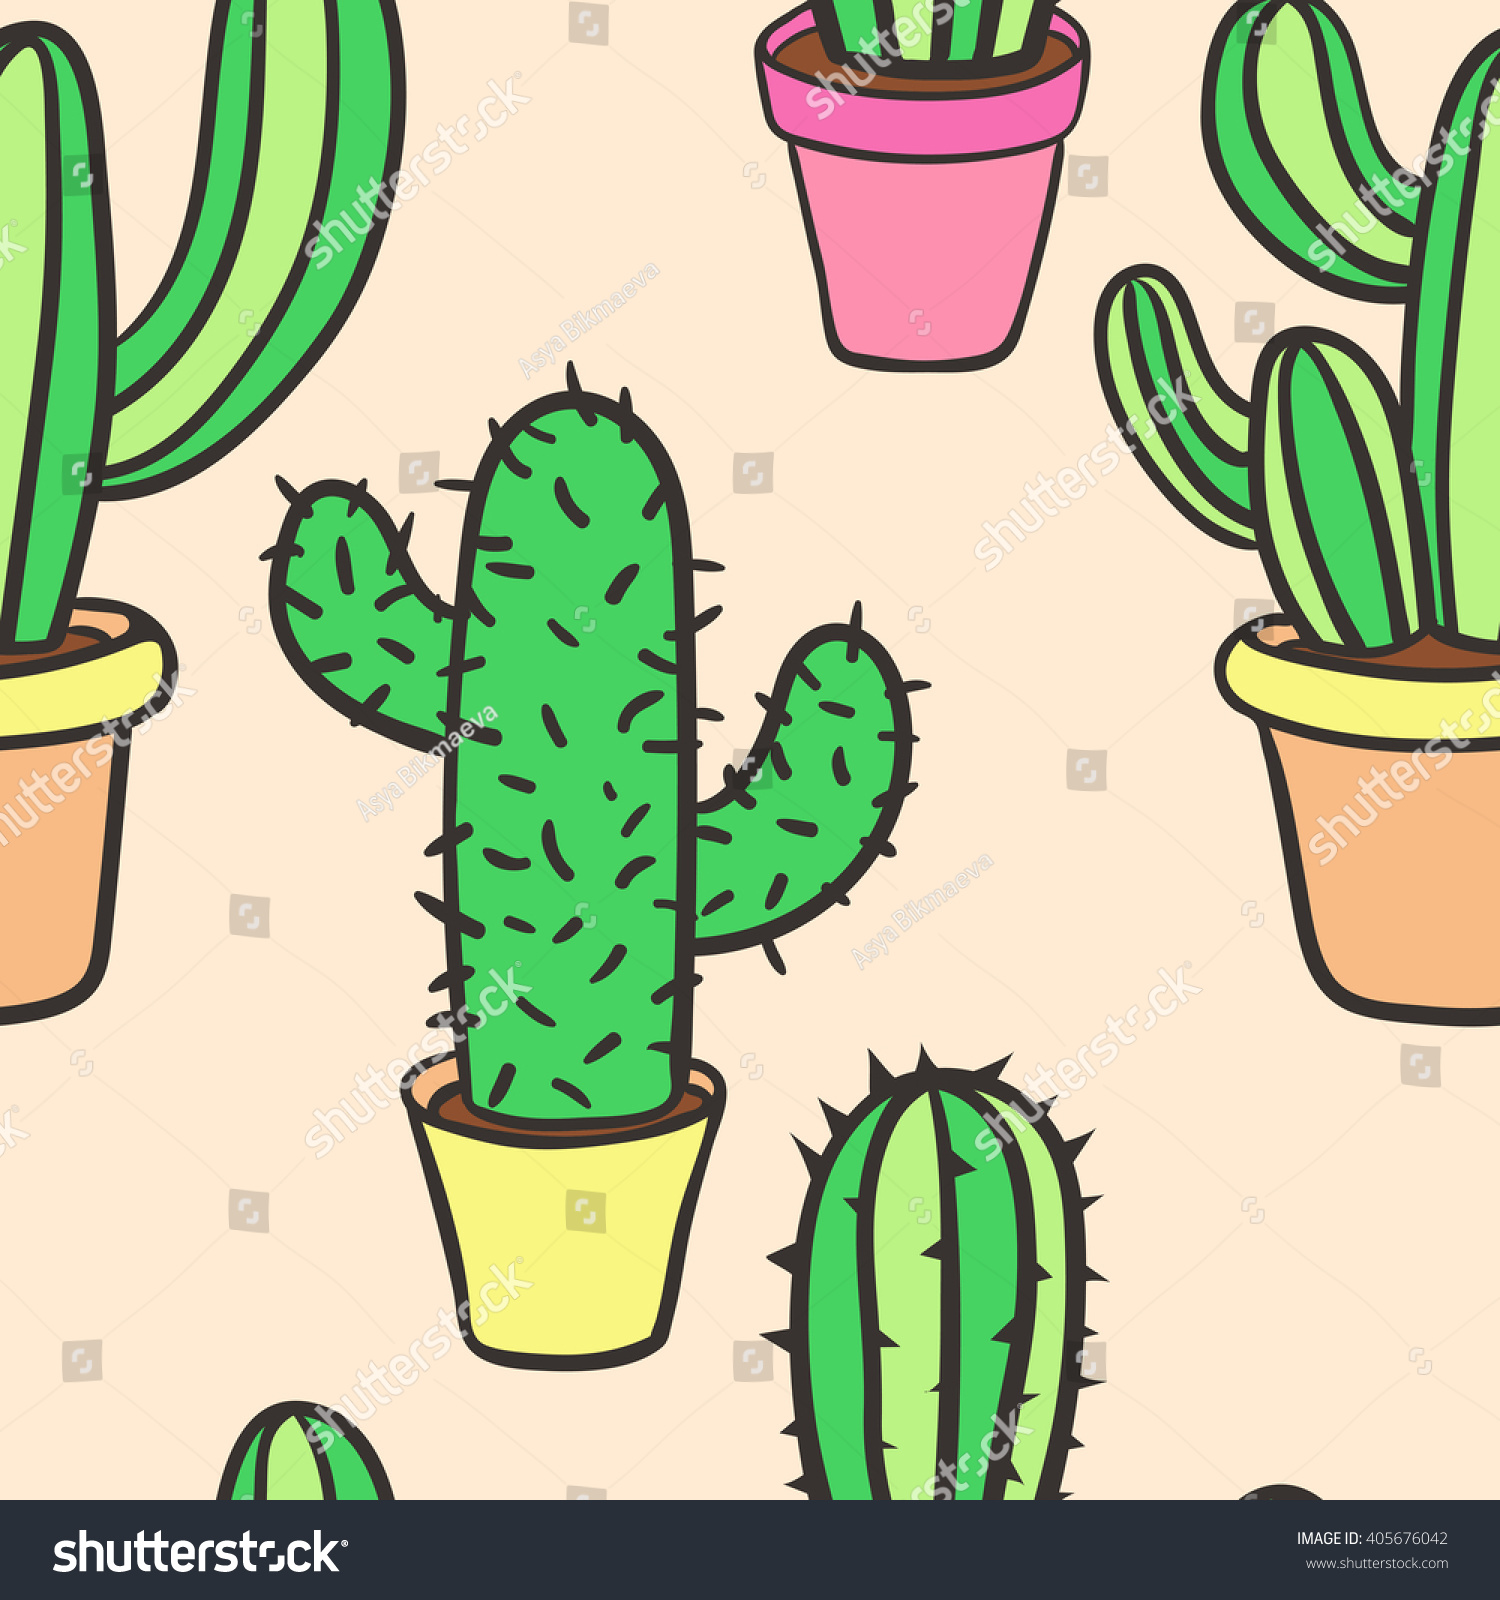 how to draw a prickly pear cactus